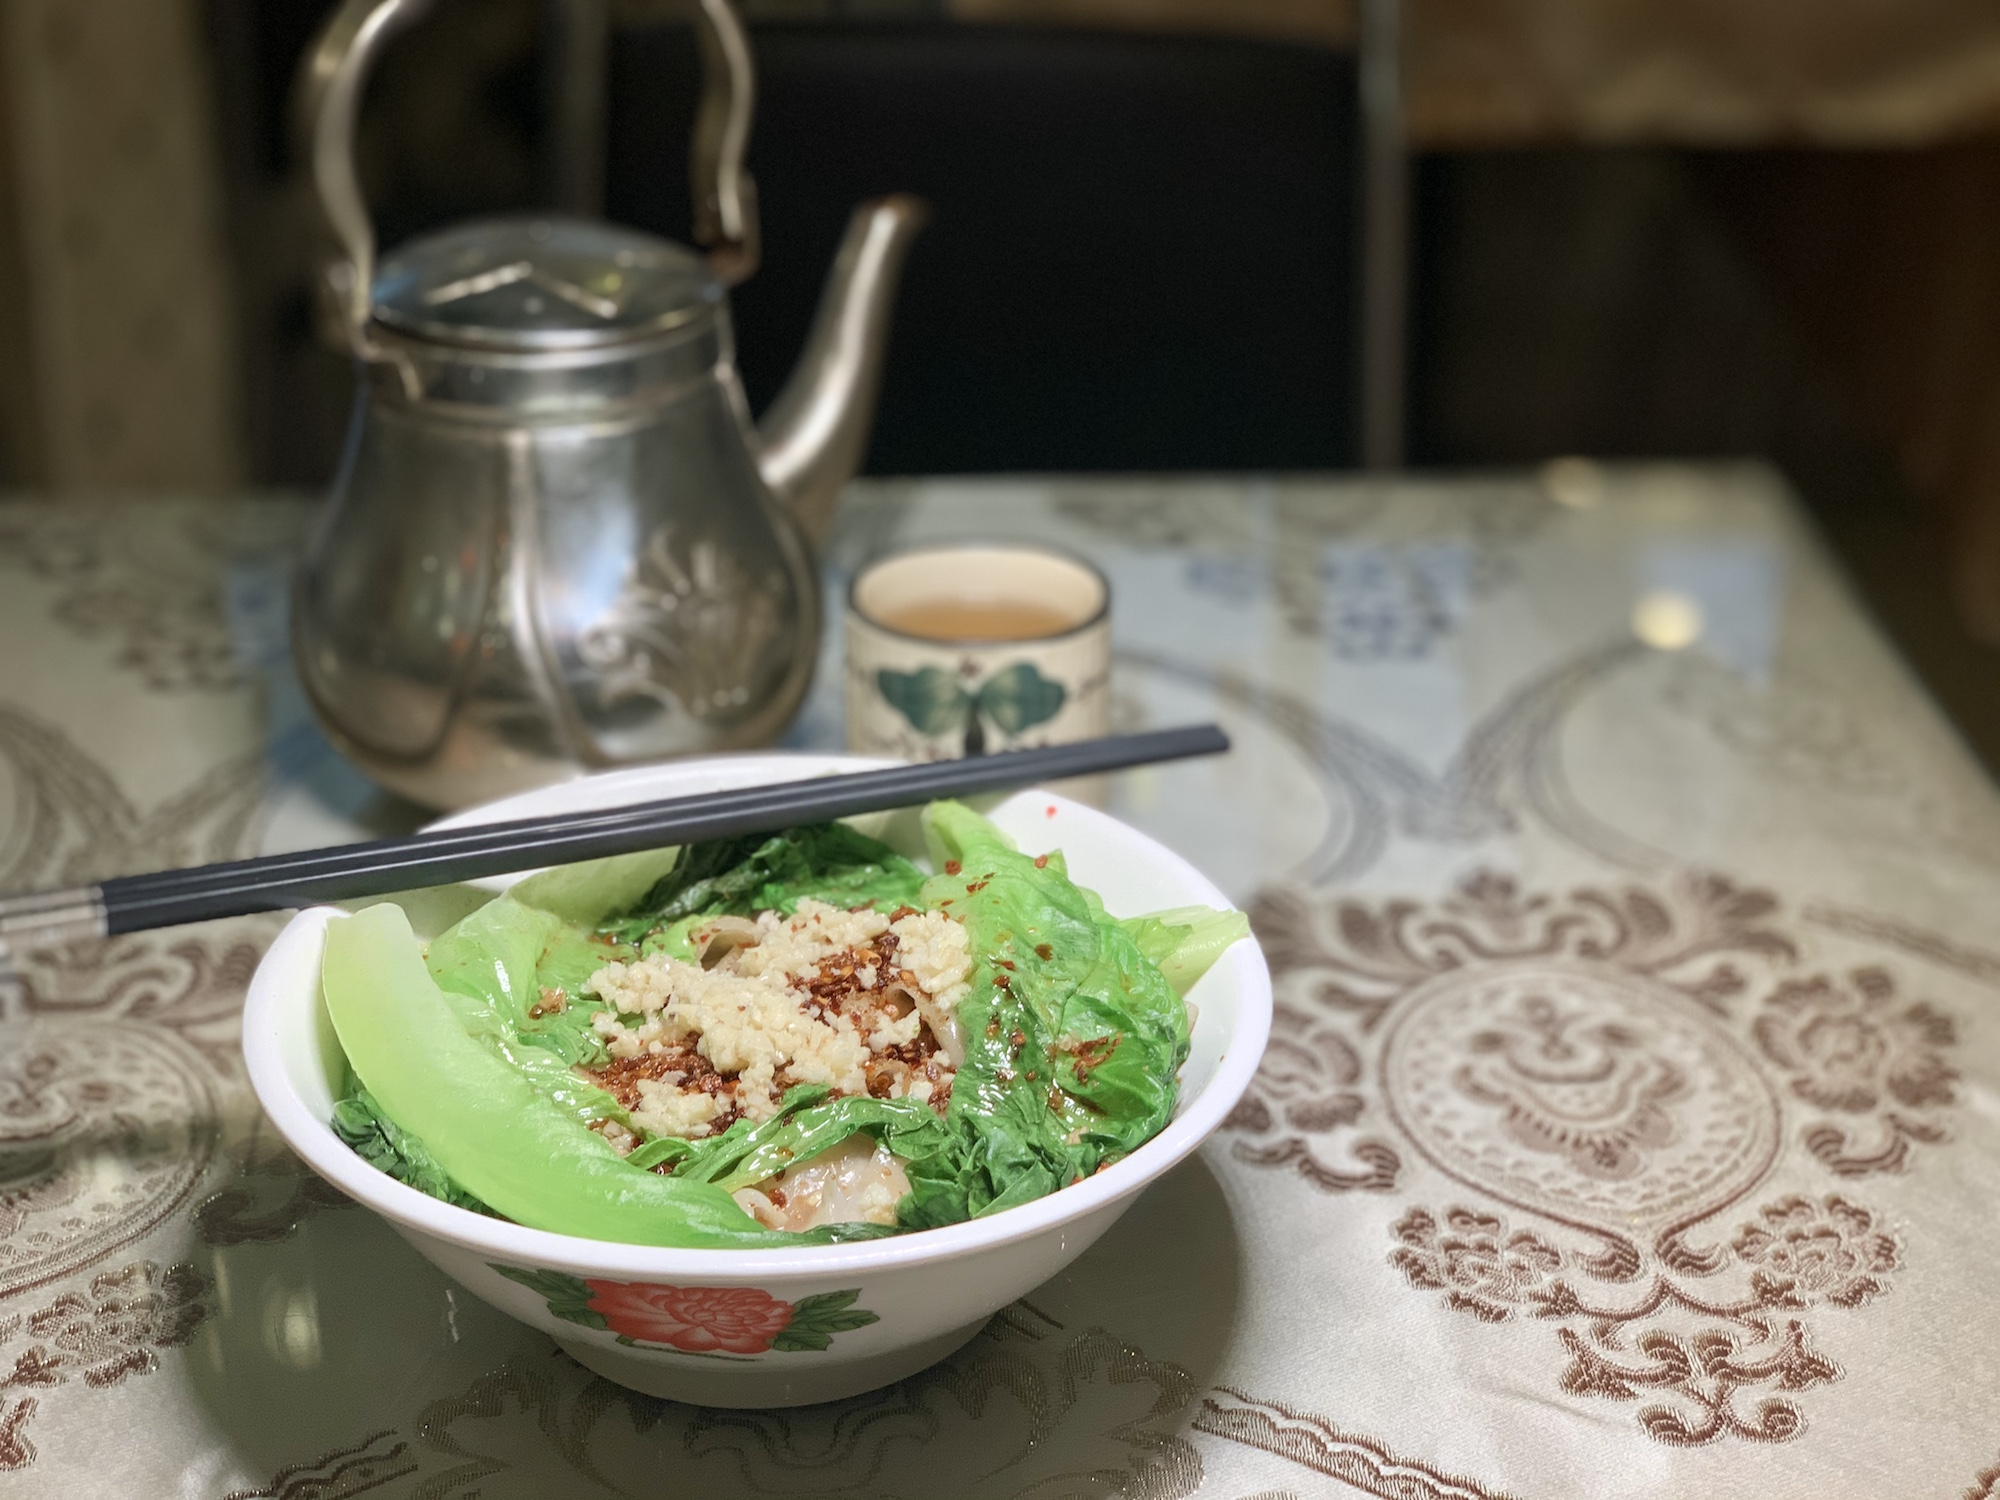 Lou Lan Restaurant Tossed Noodles on the Left Side with Teapot on the Background Macau Lifestyle